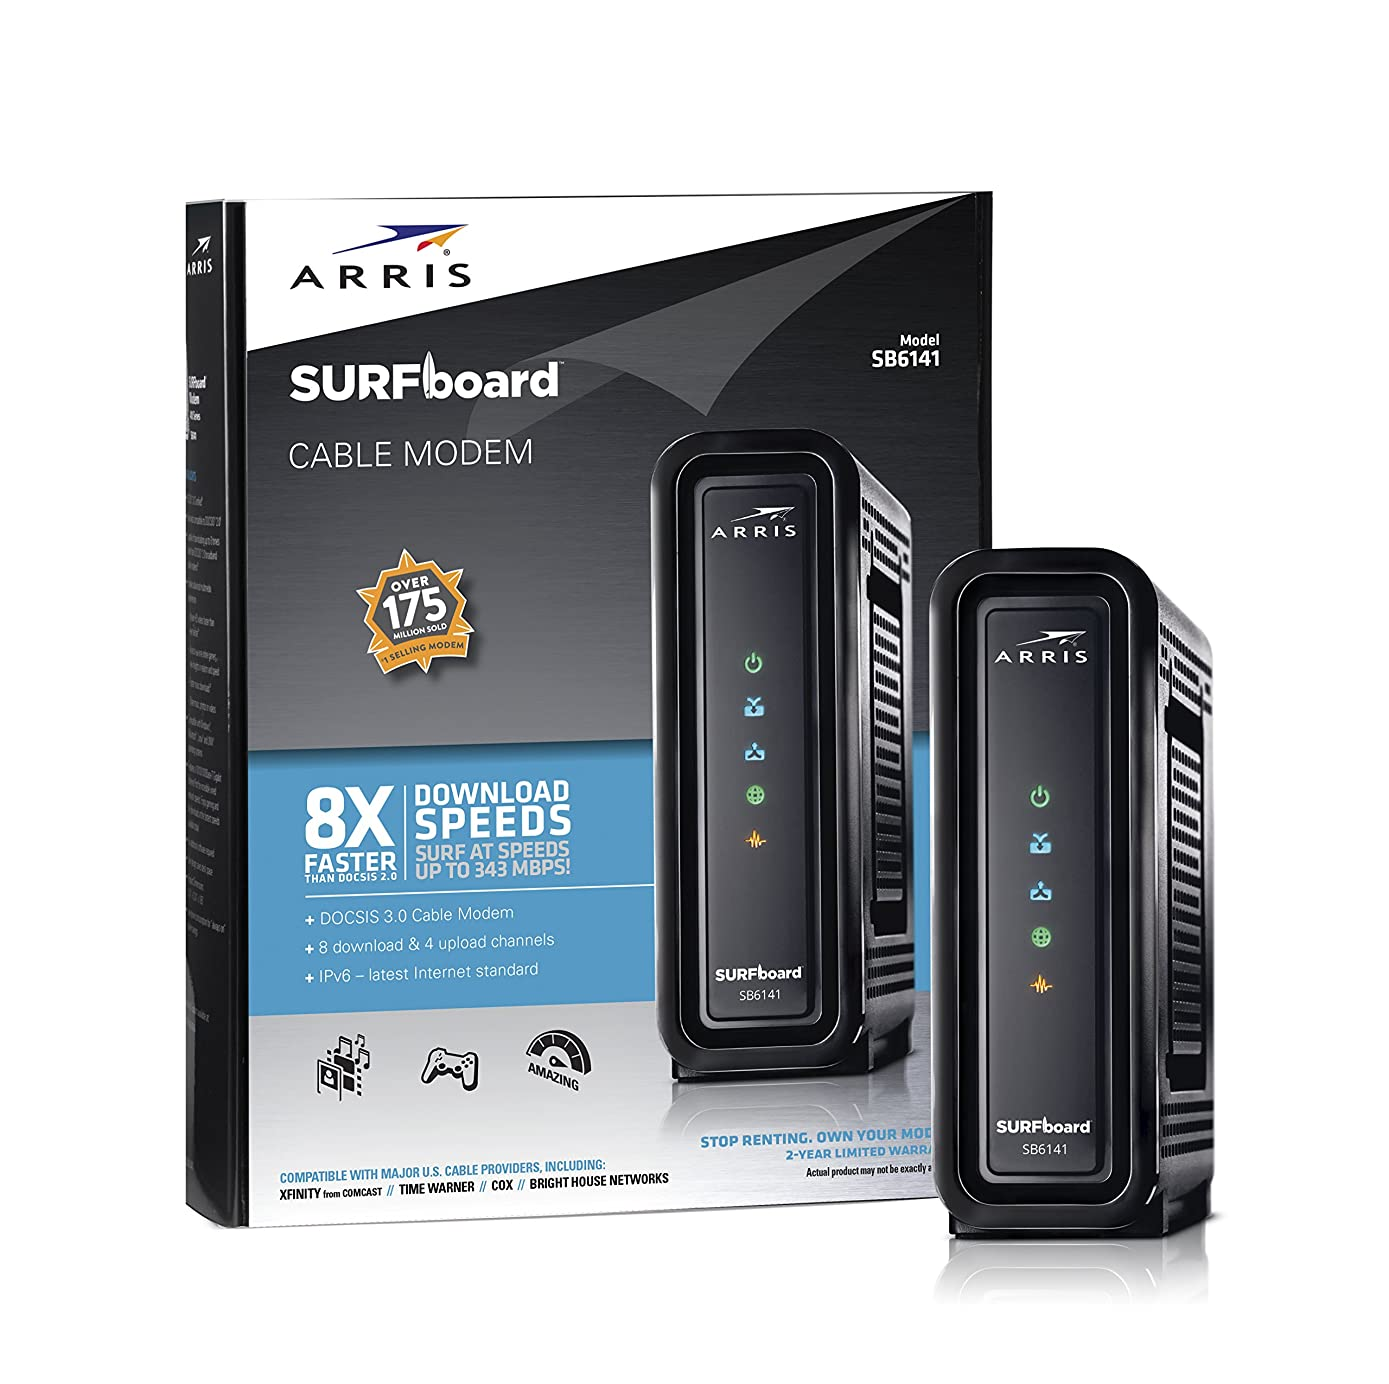 ARRIS SURFboard (8x4) DOCSIS 3.0 Cable Modem, 343 Mbps Max Speed, Certified for Comcast Xfinity, Spectrum, Cox, Cablevision & more (SB6141 Black)